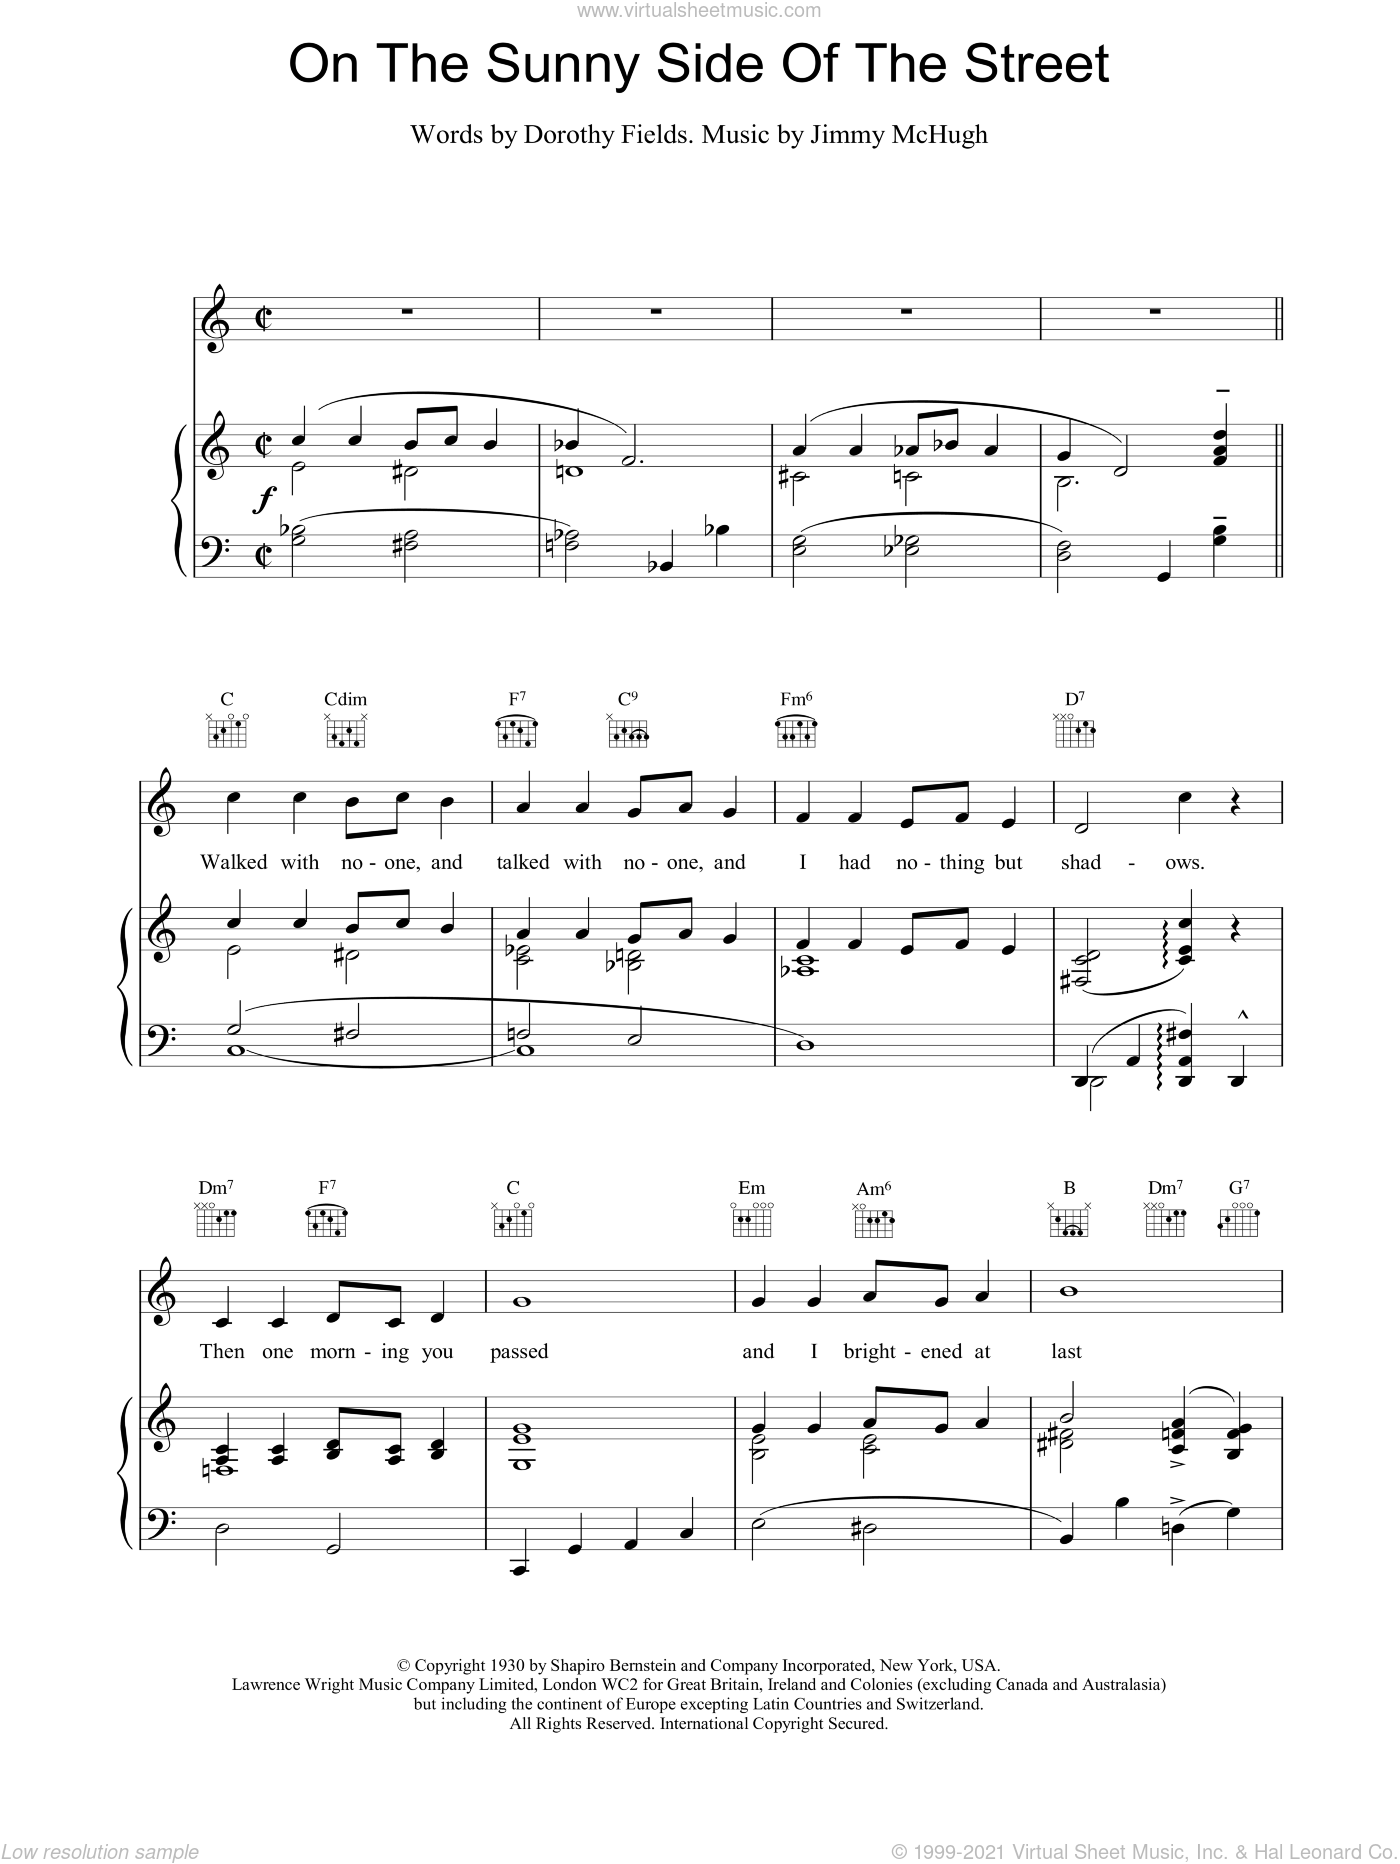 On The Sunny Side Of The Street sheet music for voice, piano or guitar by Jimmy McHugh